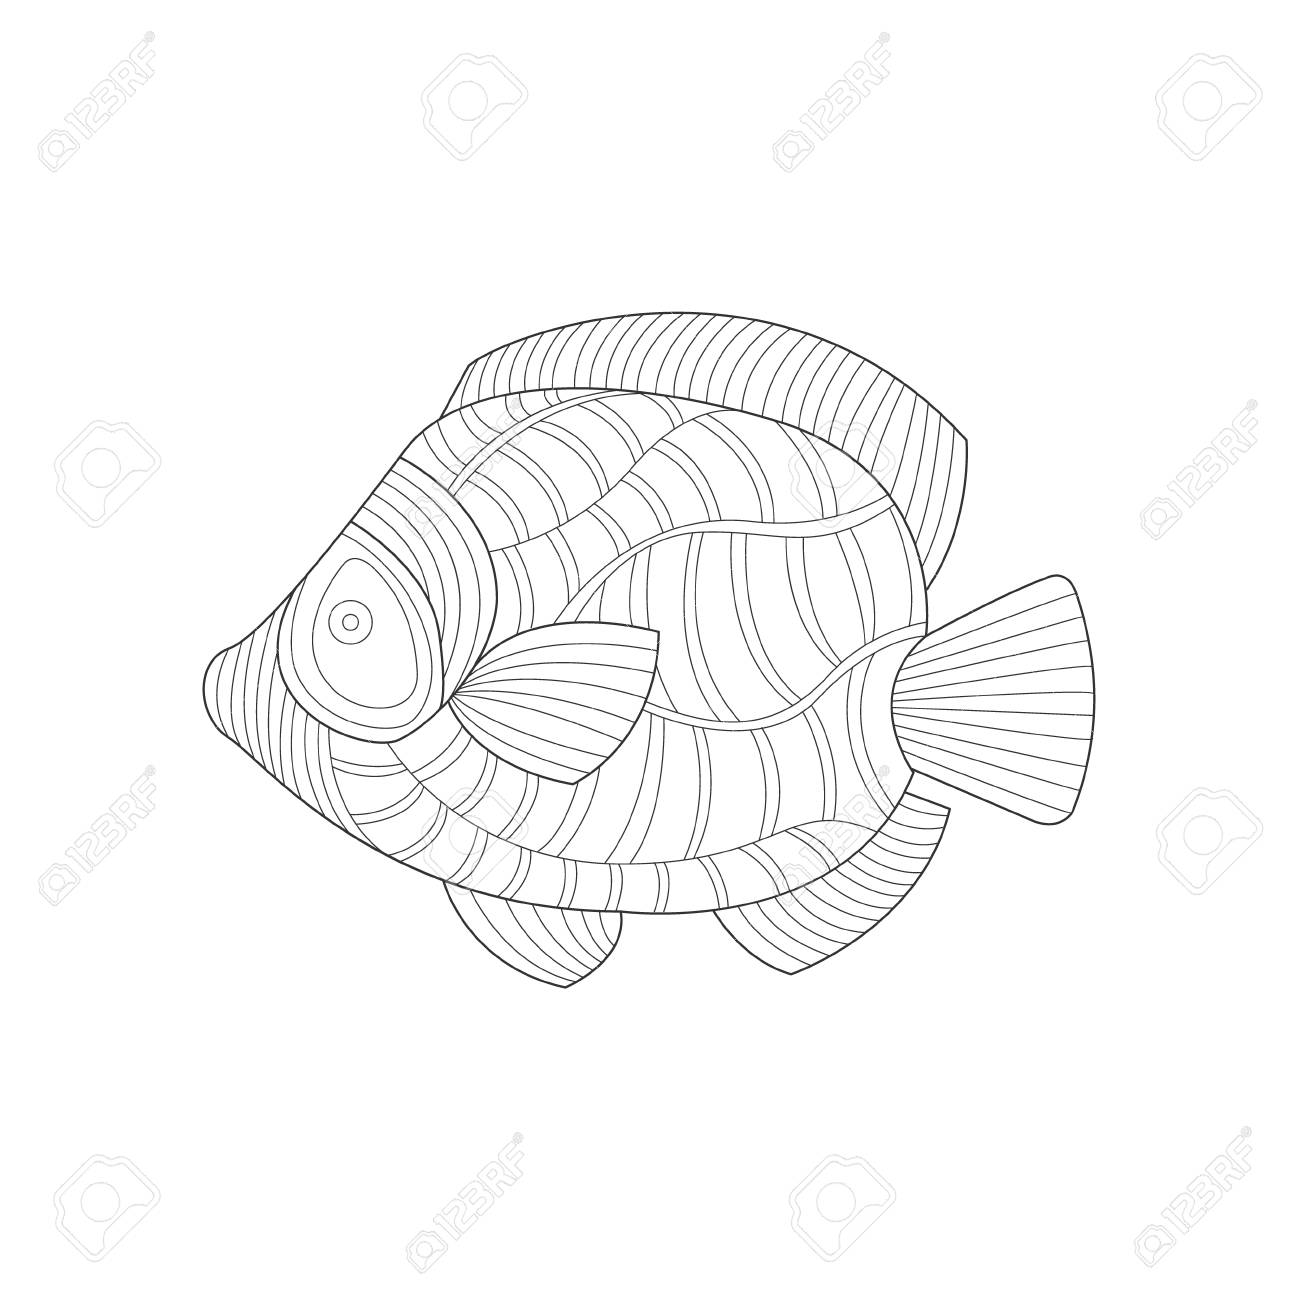 Angel Fish Sea Underwater Nature Adult Black And White Coloring Book Illustration Stock Vector